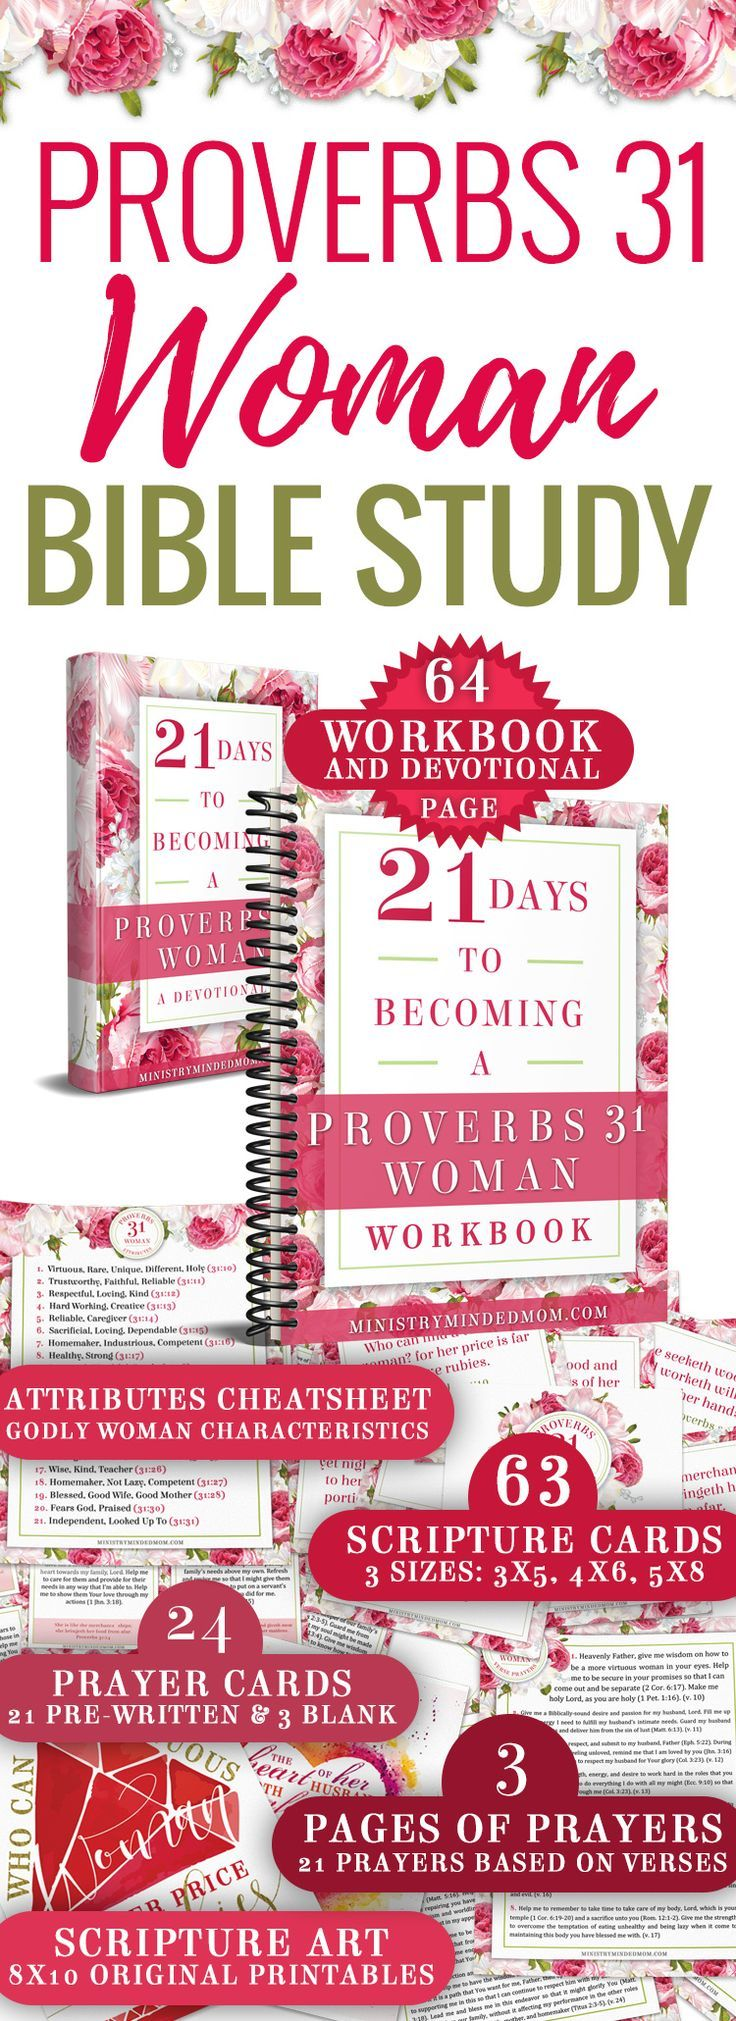 Being a virtuous woman seems intimidating. But it doesn't have to be! This Proverbs 31 Woman Bible study toolkit has everything you need to dive deep into your studies and learn how to be a Proverbs 31 woman. / proverbs 31 woman bible study / proverbs 31 bible study / virtuous woman bible study / how to be a proverbs 31 woman / how to be a virtuous woman via @ministrymindedmom